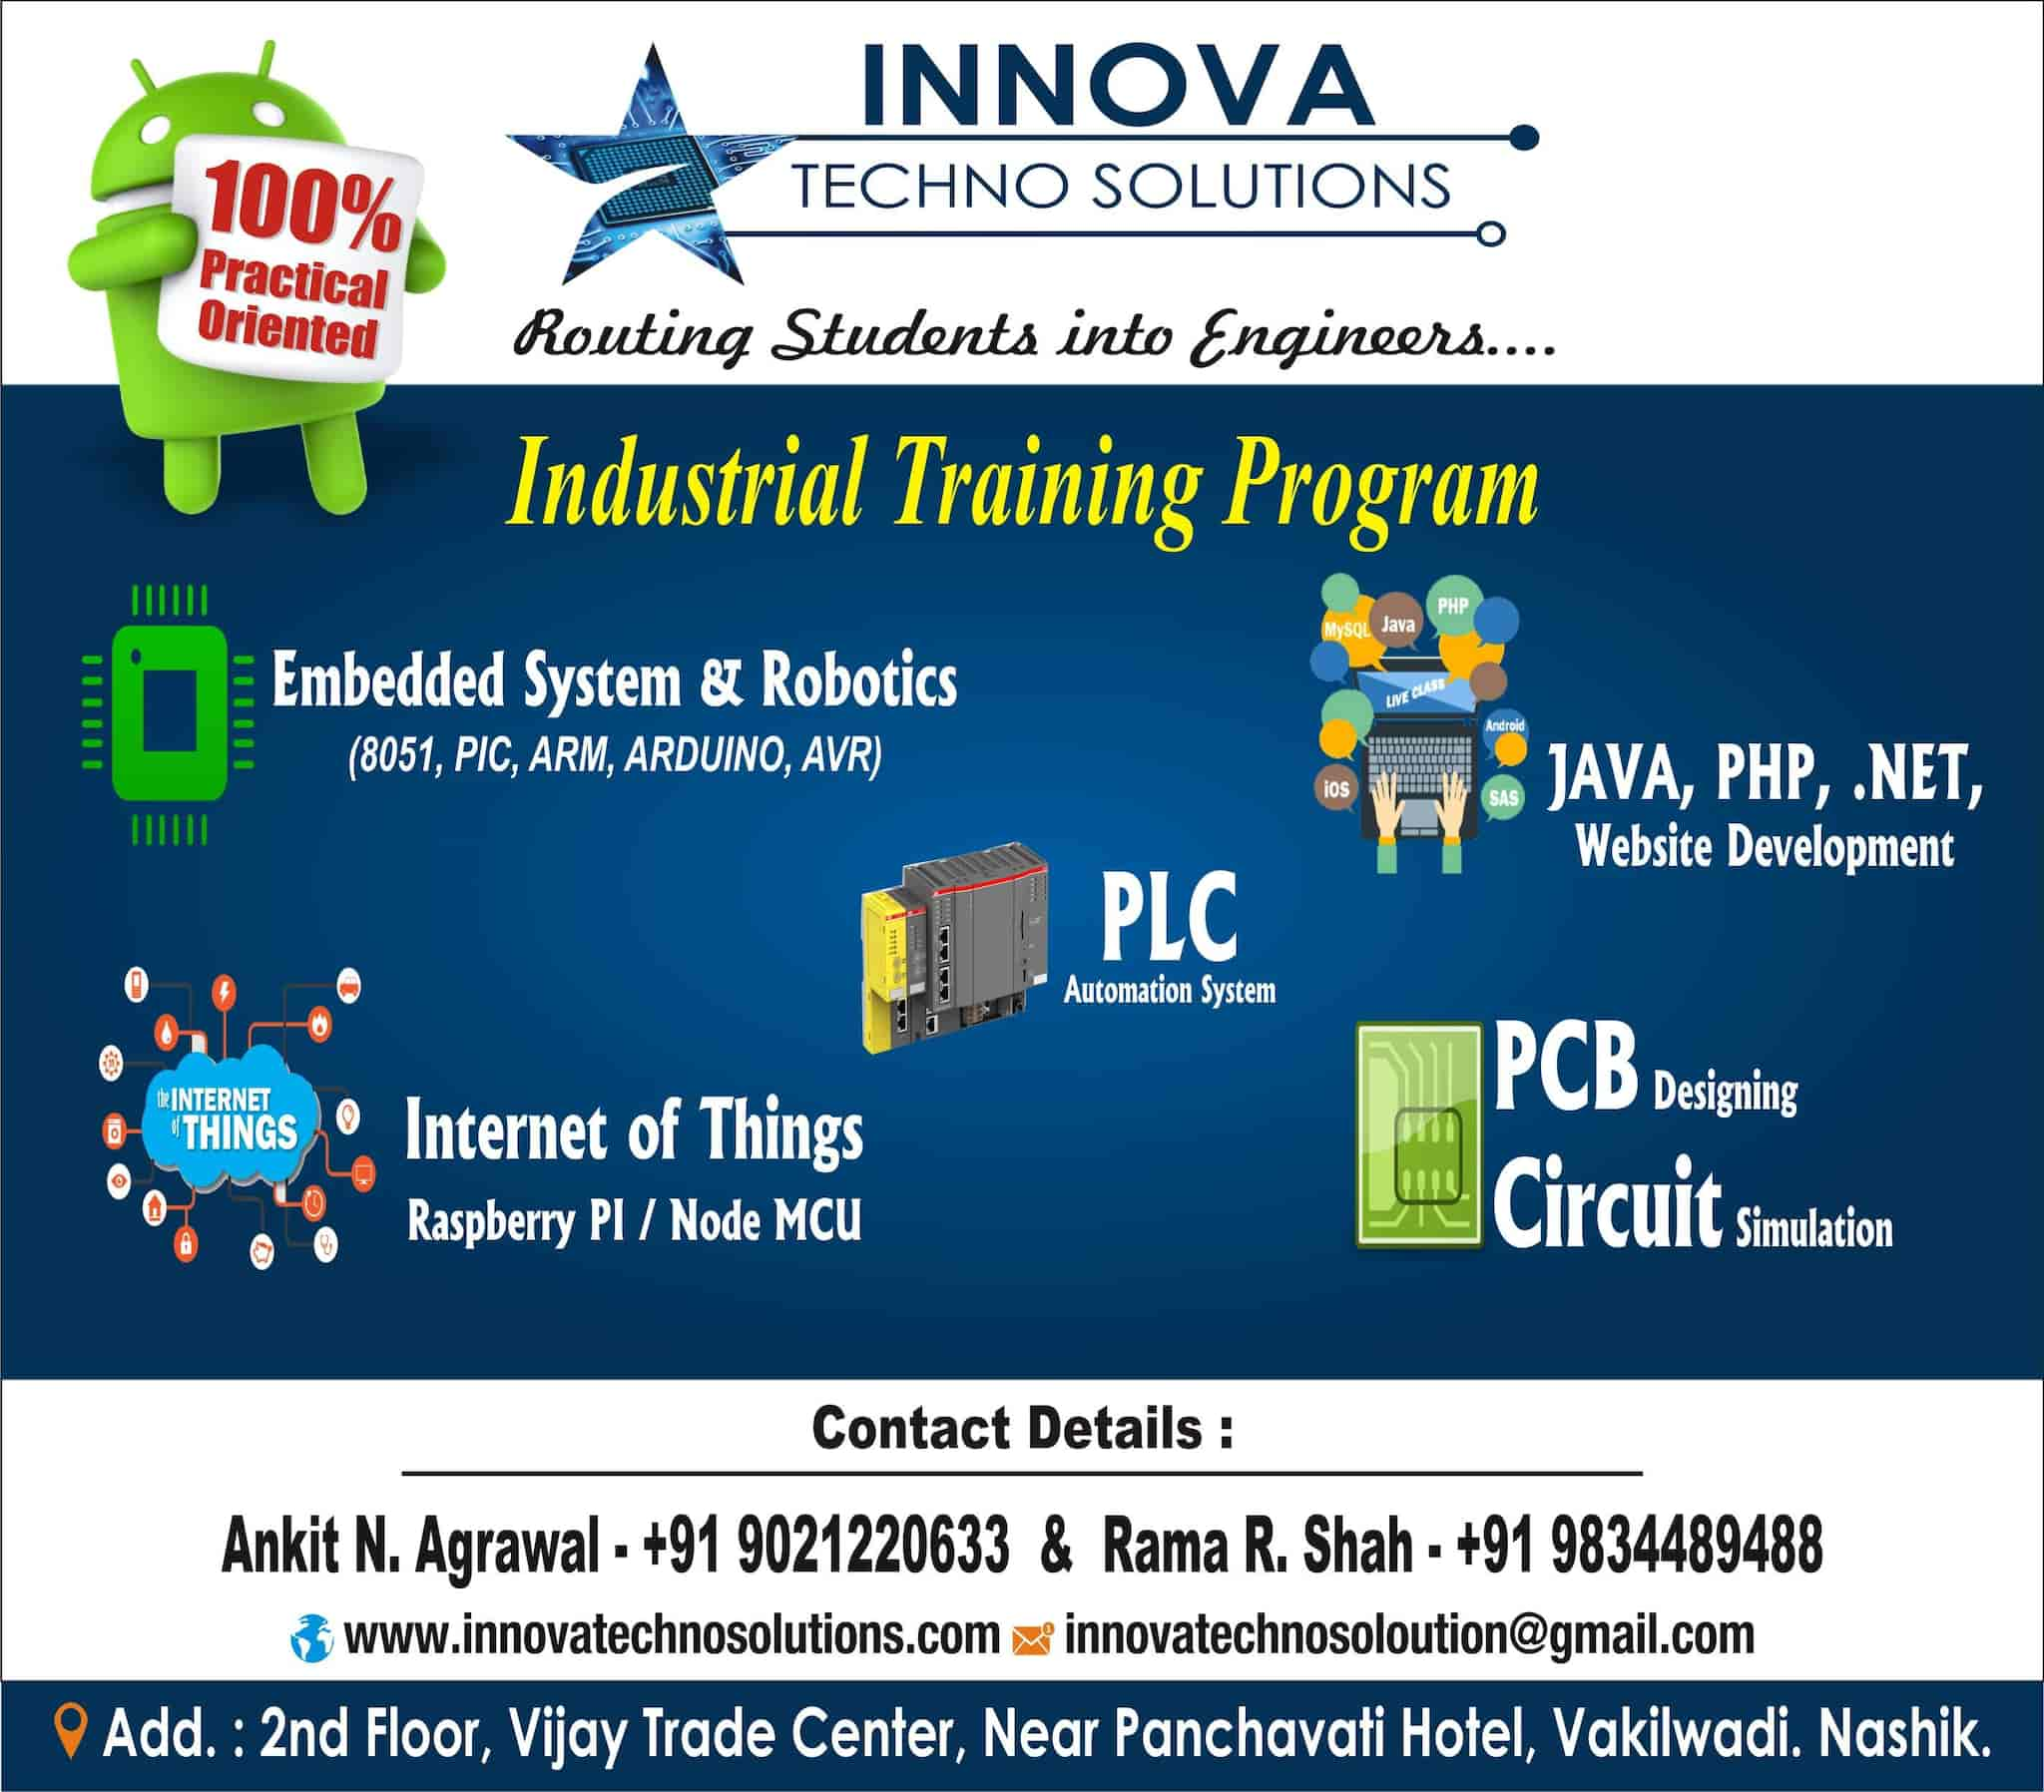 Innova Techno Solutions Photos, , Nashik- Pictures & Images Gallery